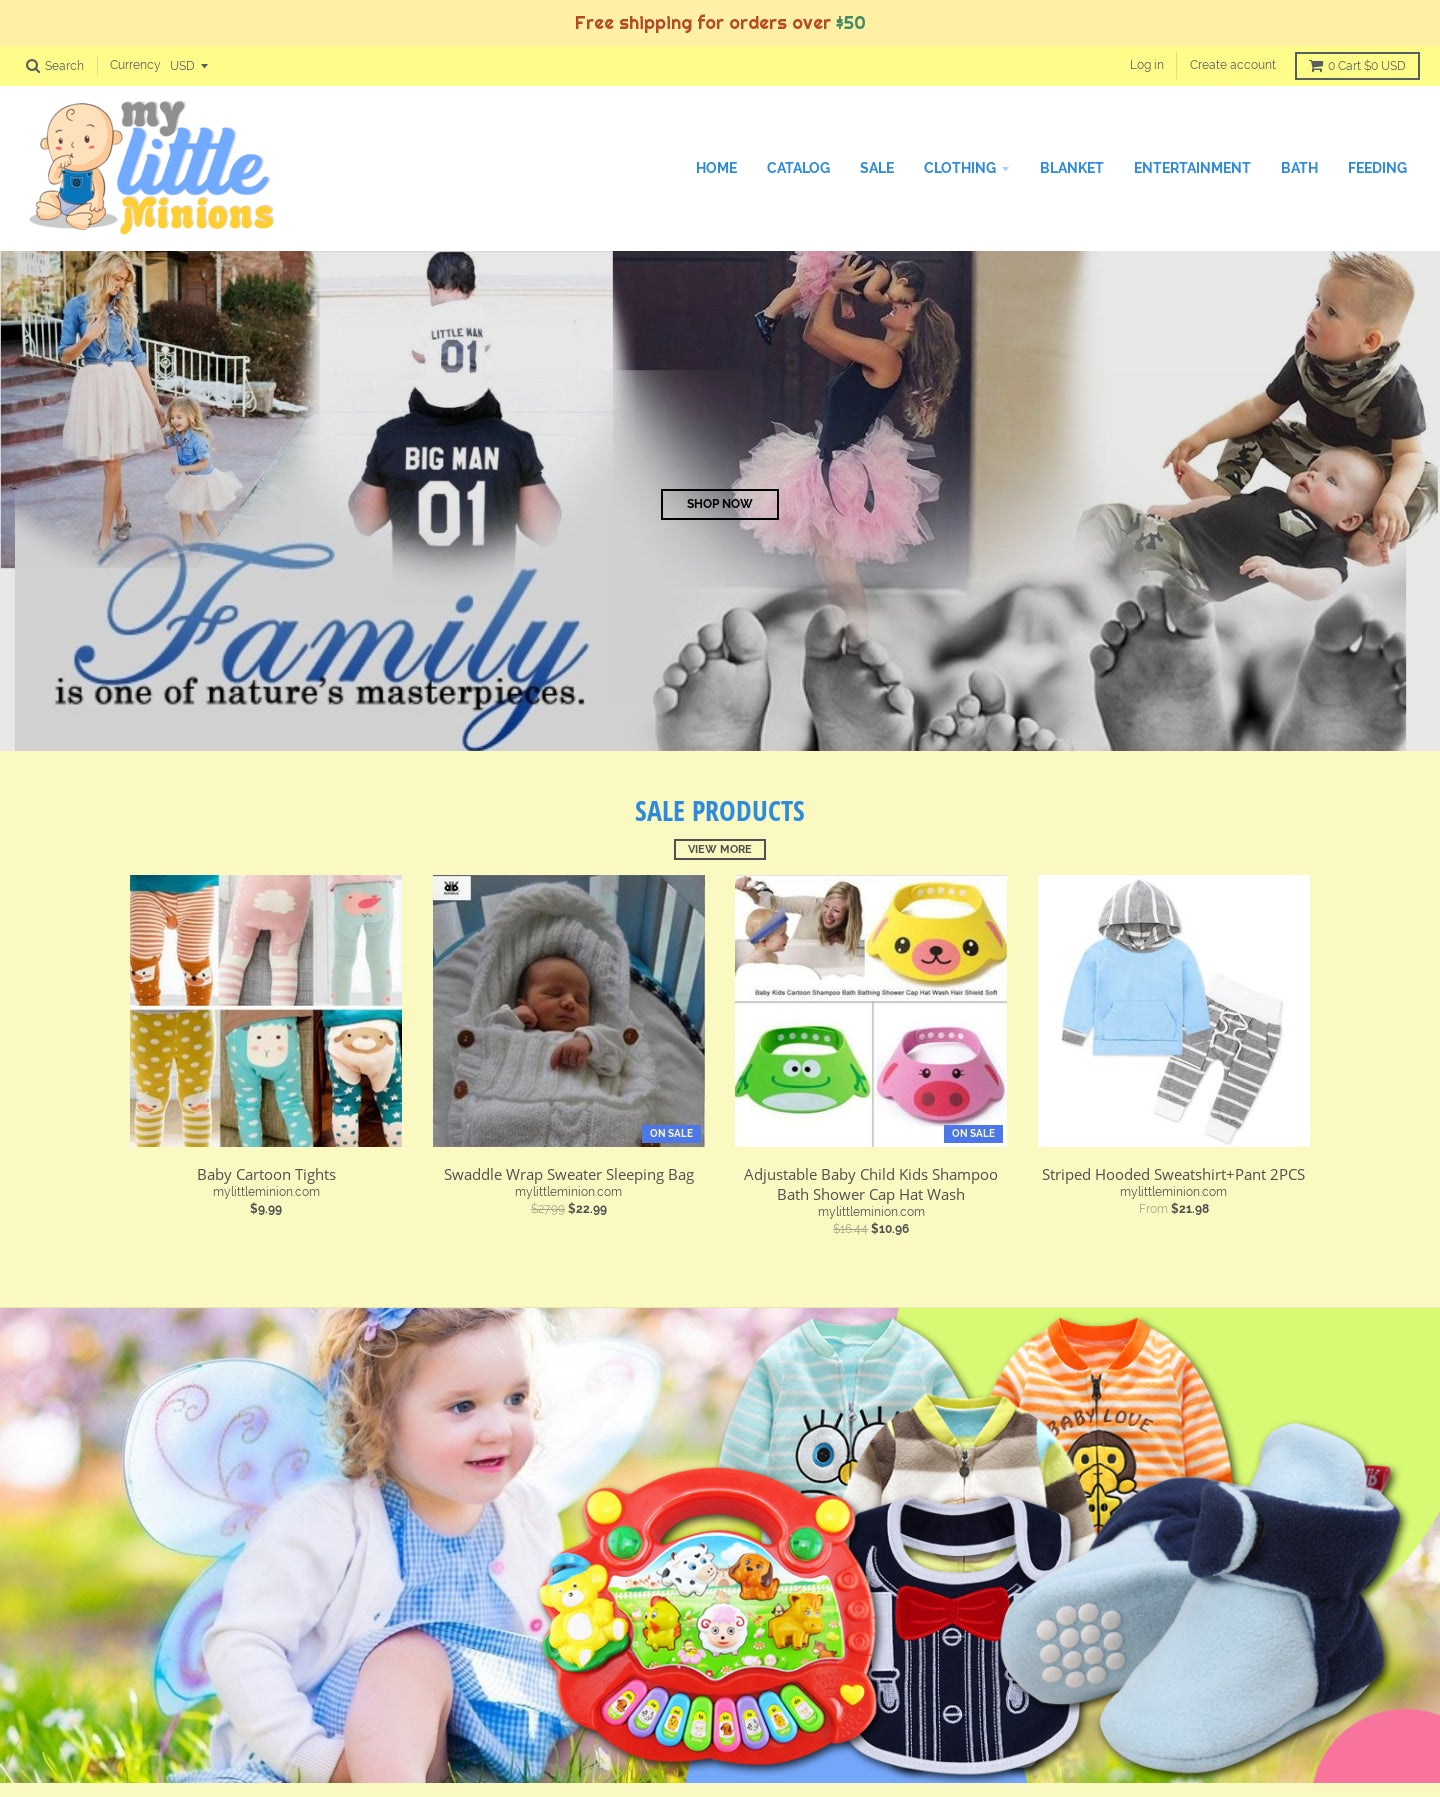 mylittleminion.com Screenshot - 2